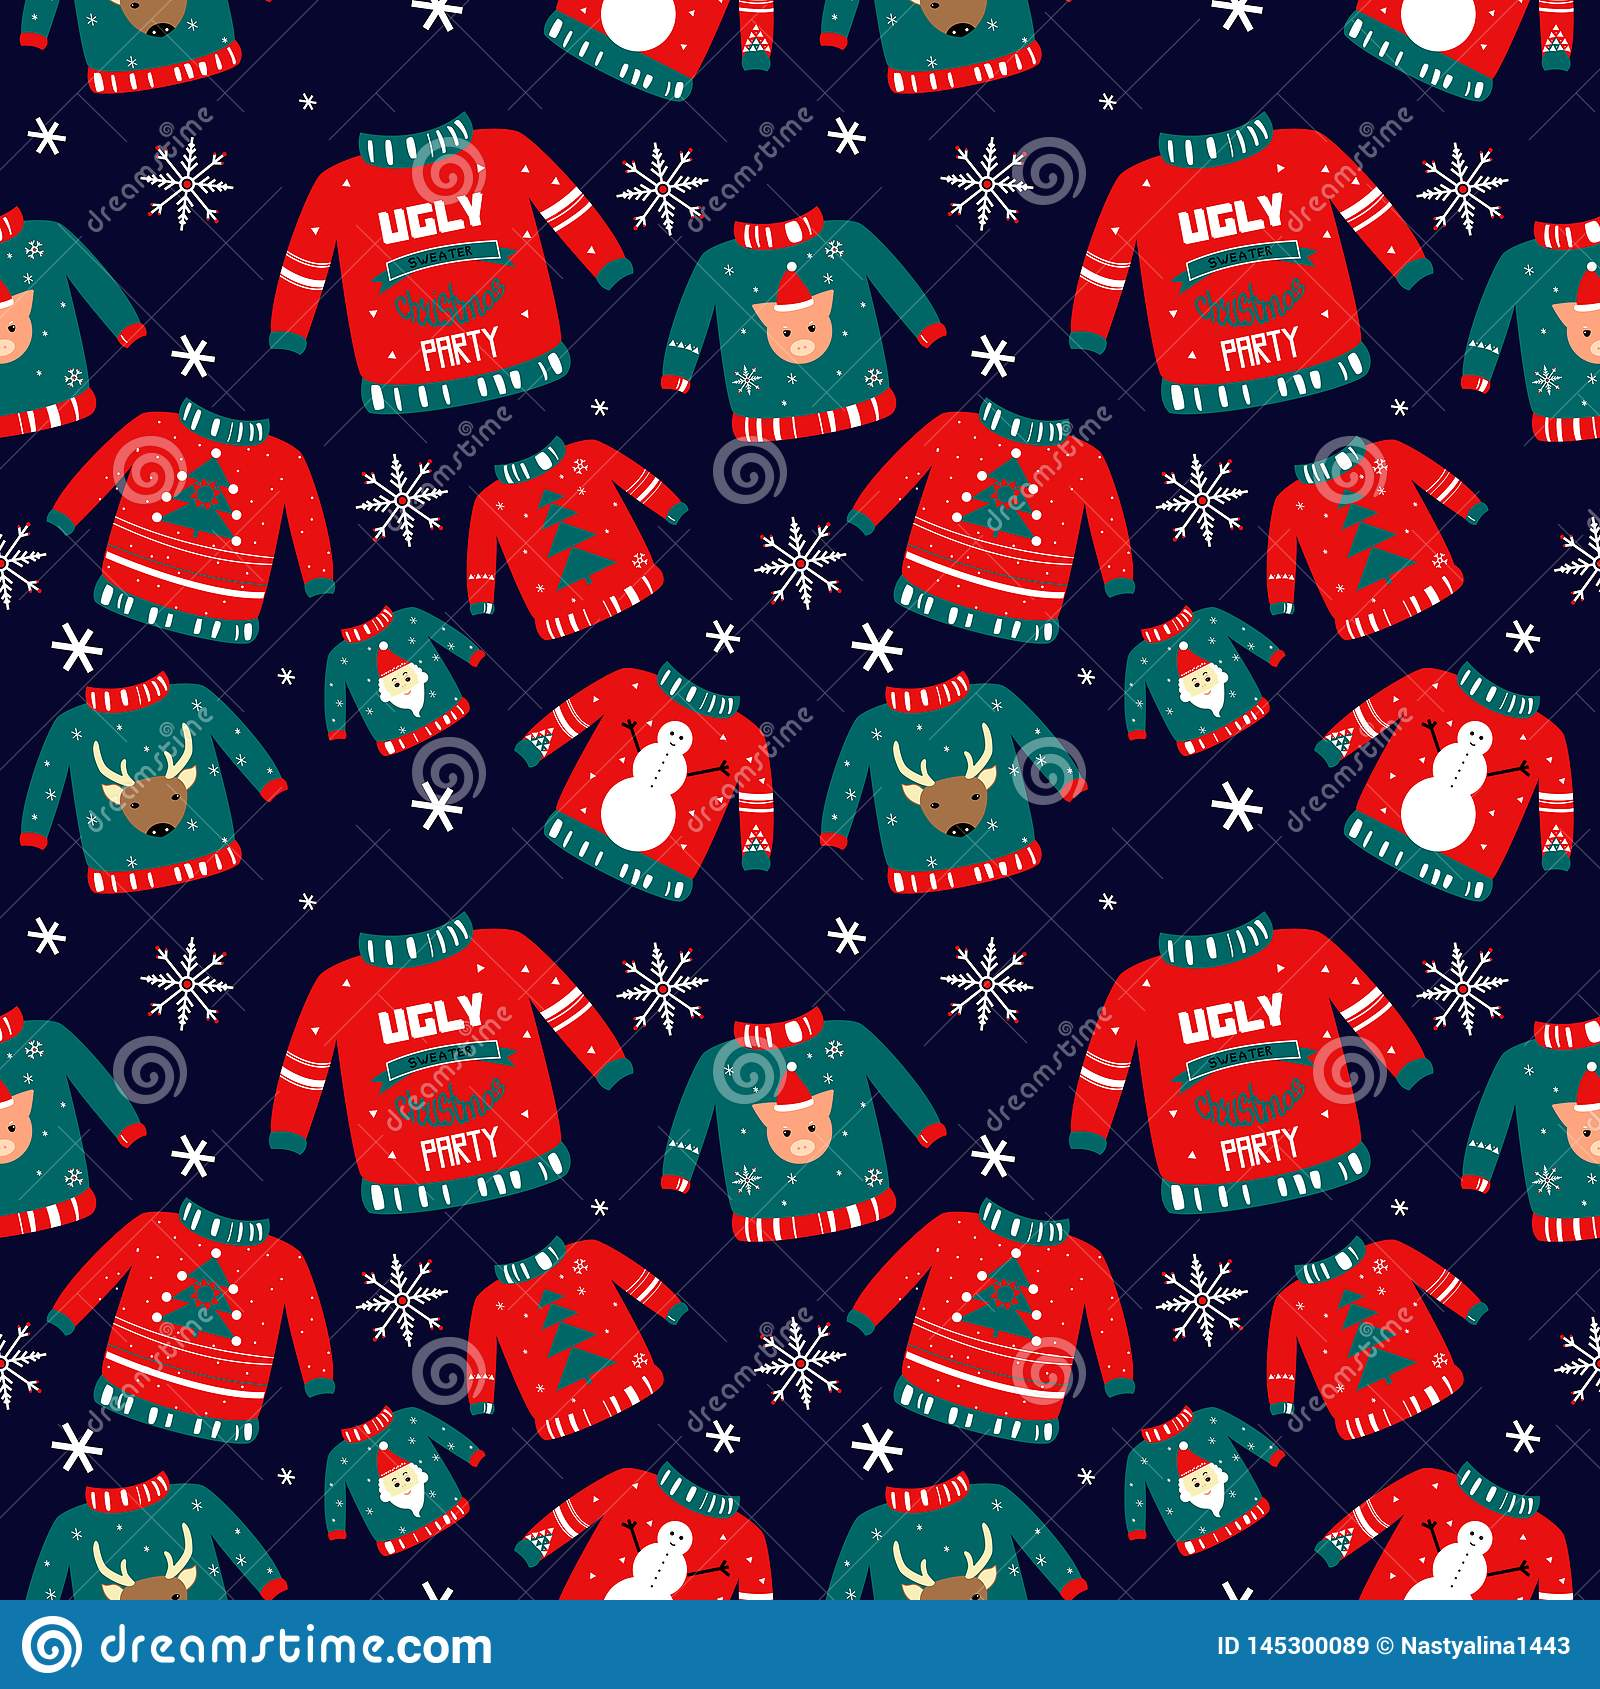 Ugly Christmas Sweaters 2020 To Draw Vector Pattern For Holiday Events As Ugly Christmas Sweater Party